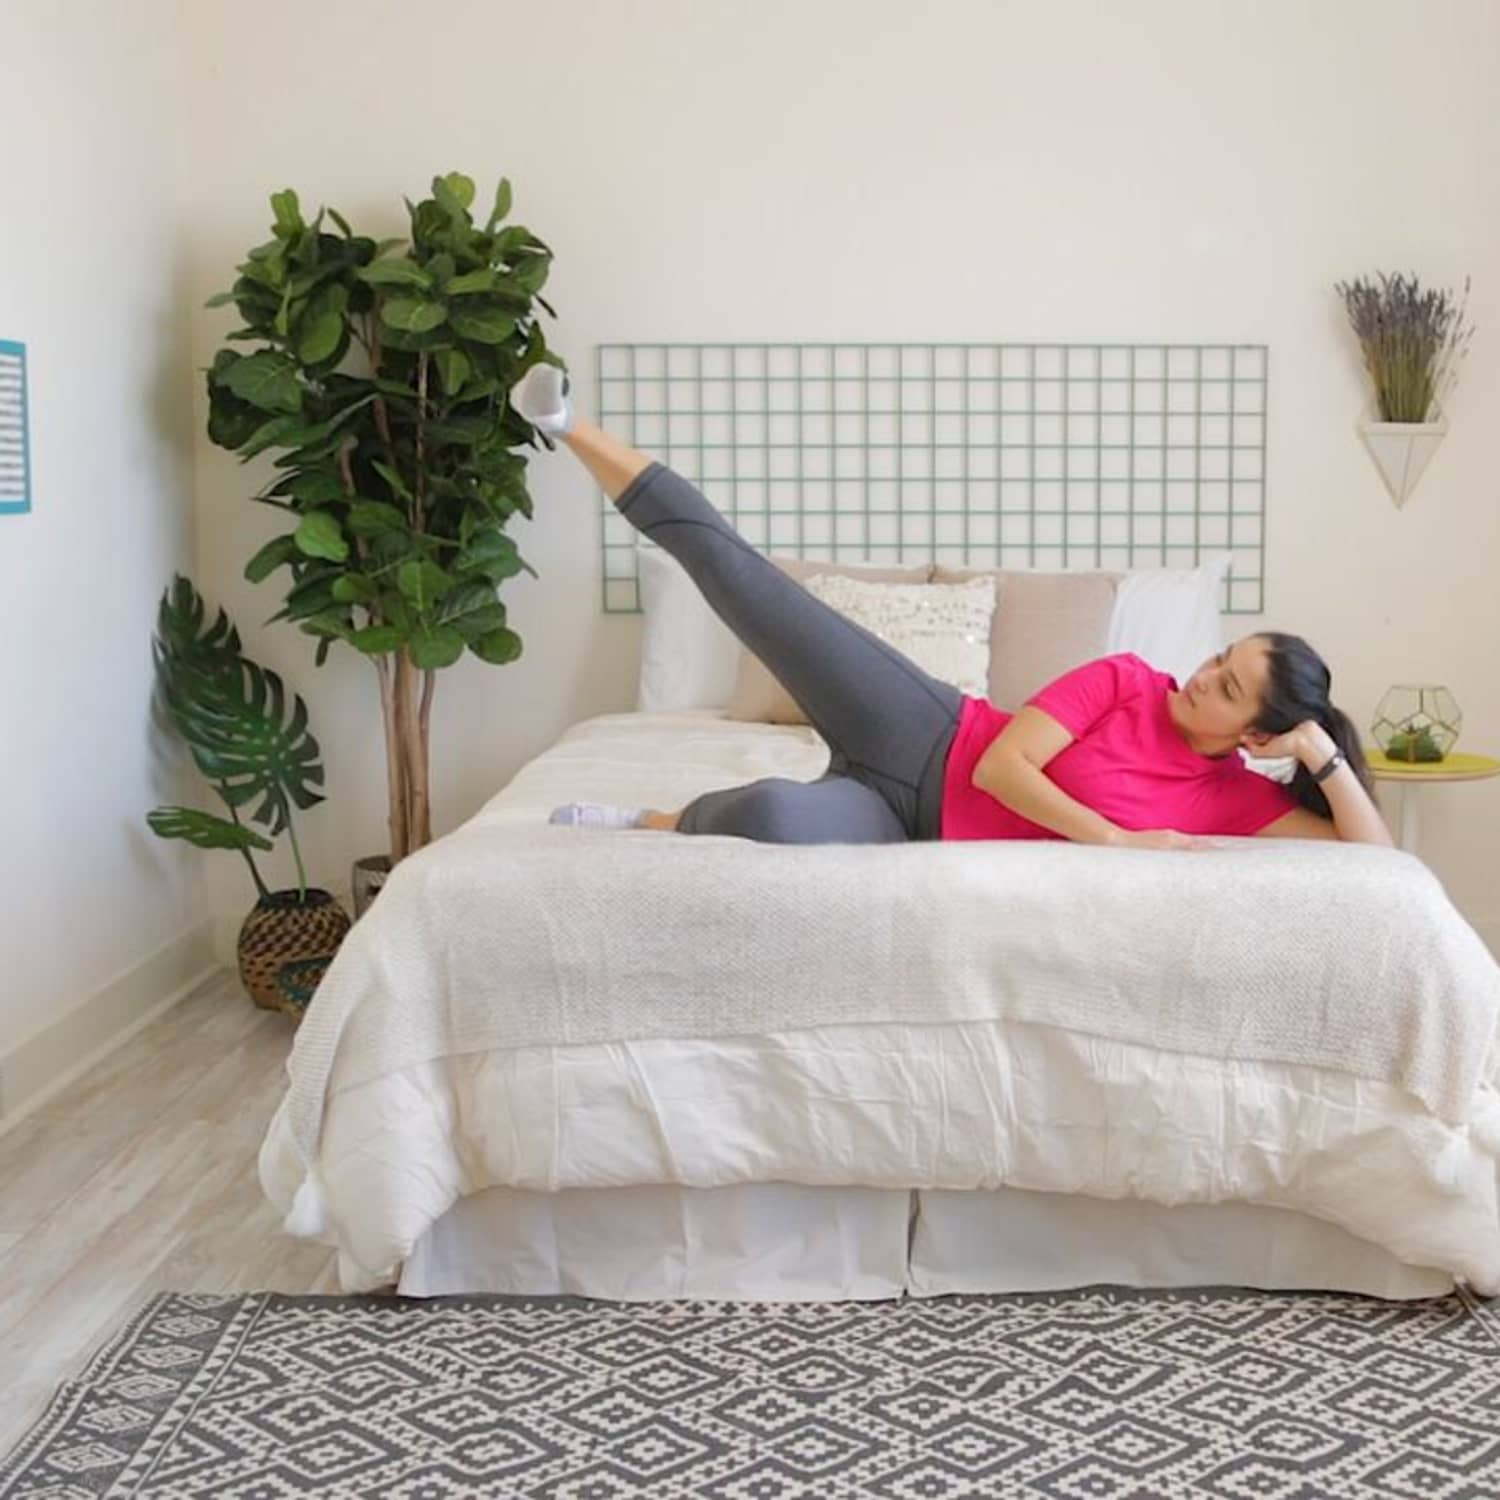 Bed Workout 13 Exercises To Do Without Leaving Bed Apartment Therapy